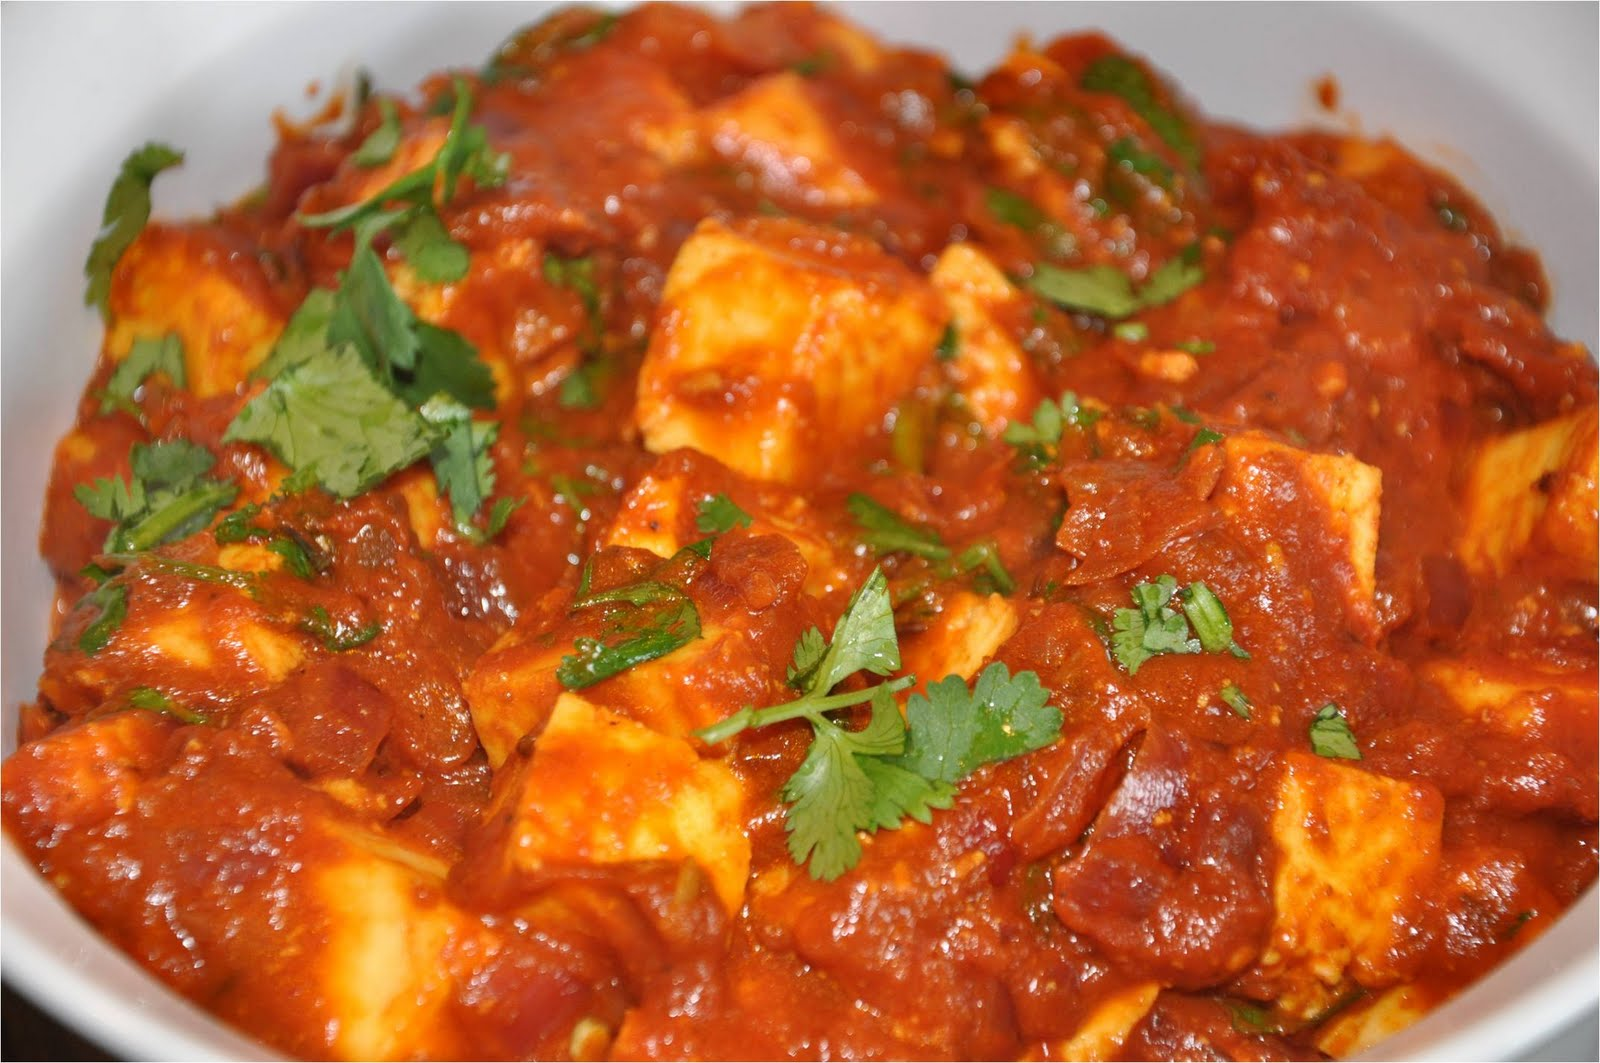 Mharo rajasthans recipes rajasthan a state in western india mharo rajasthans recipes rajasthan a state in western india forumfinder Choice Image